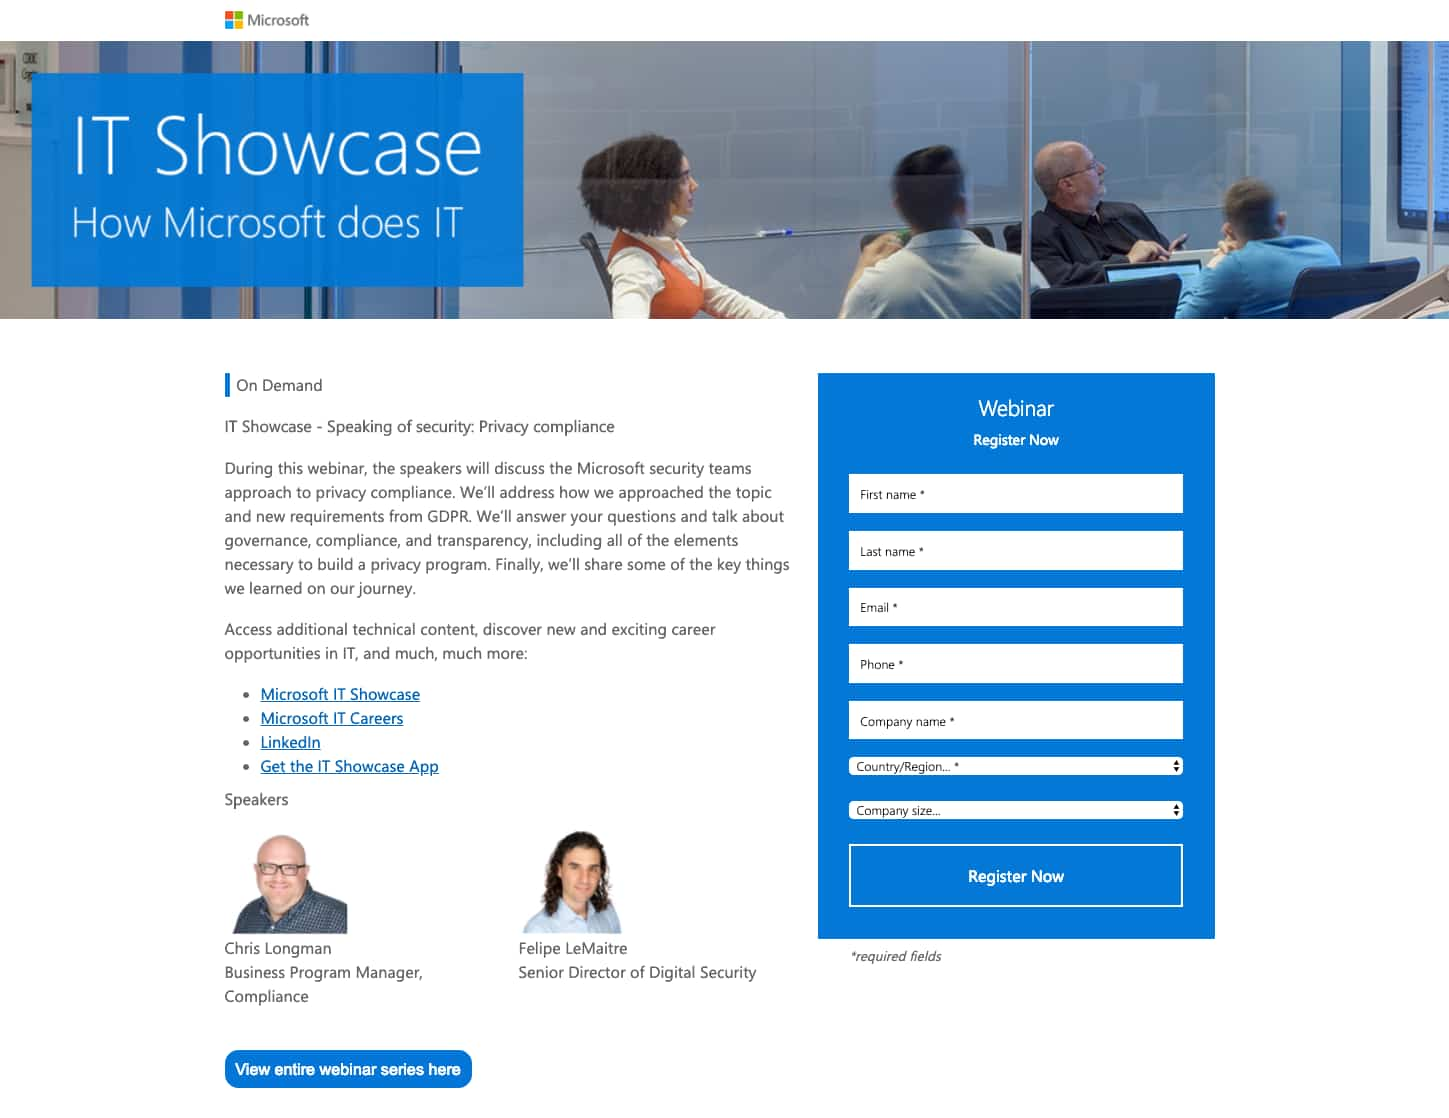 Microsoft IT Showcase Webinar Landing page